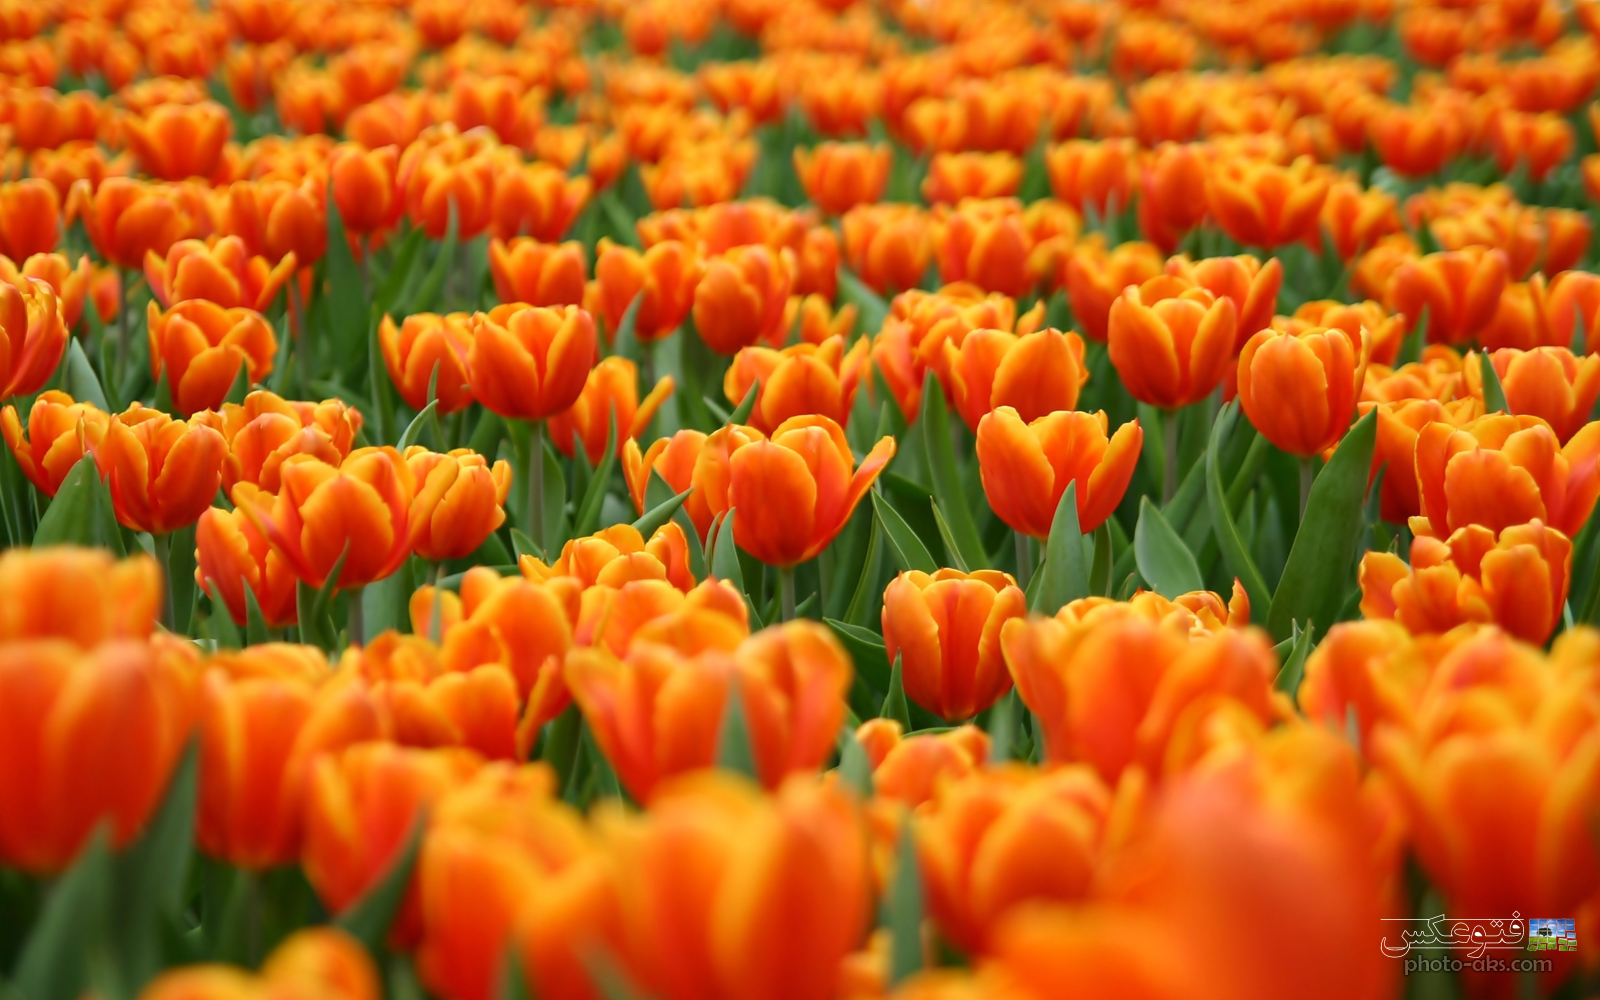 tulips_orange_holand